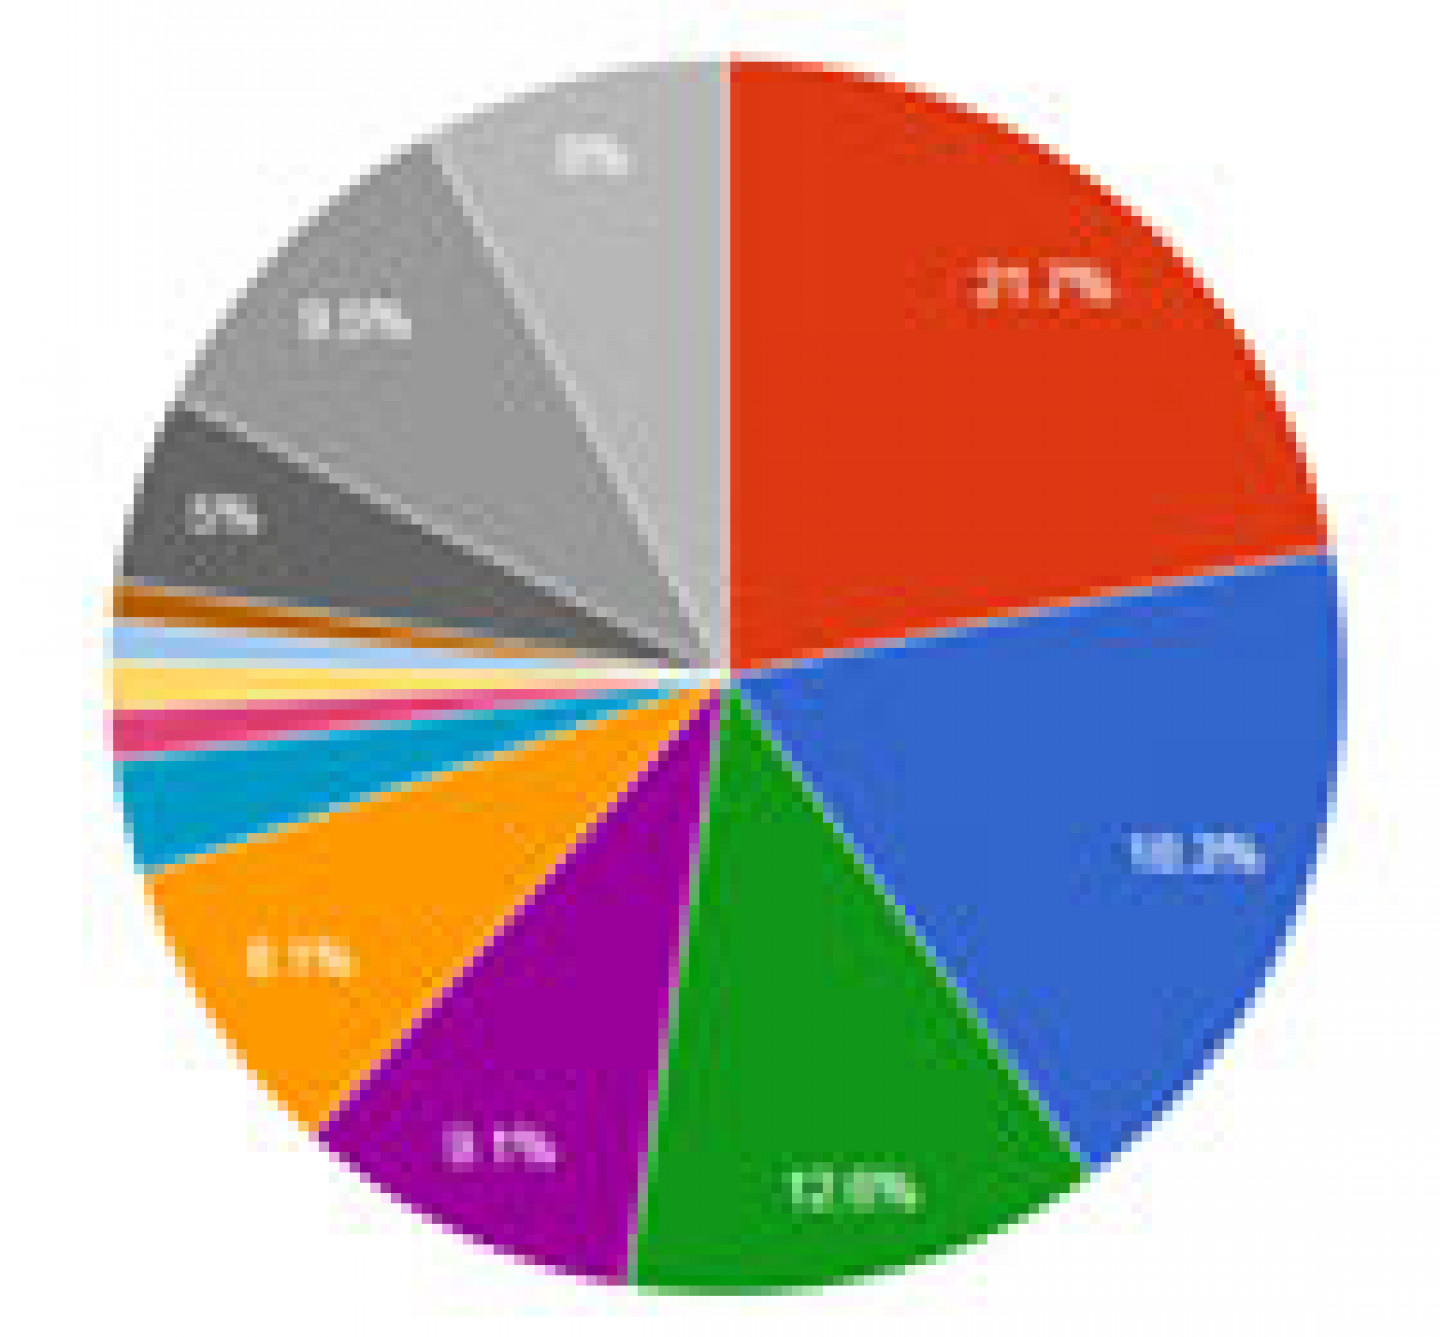 piechart_puff